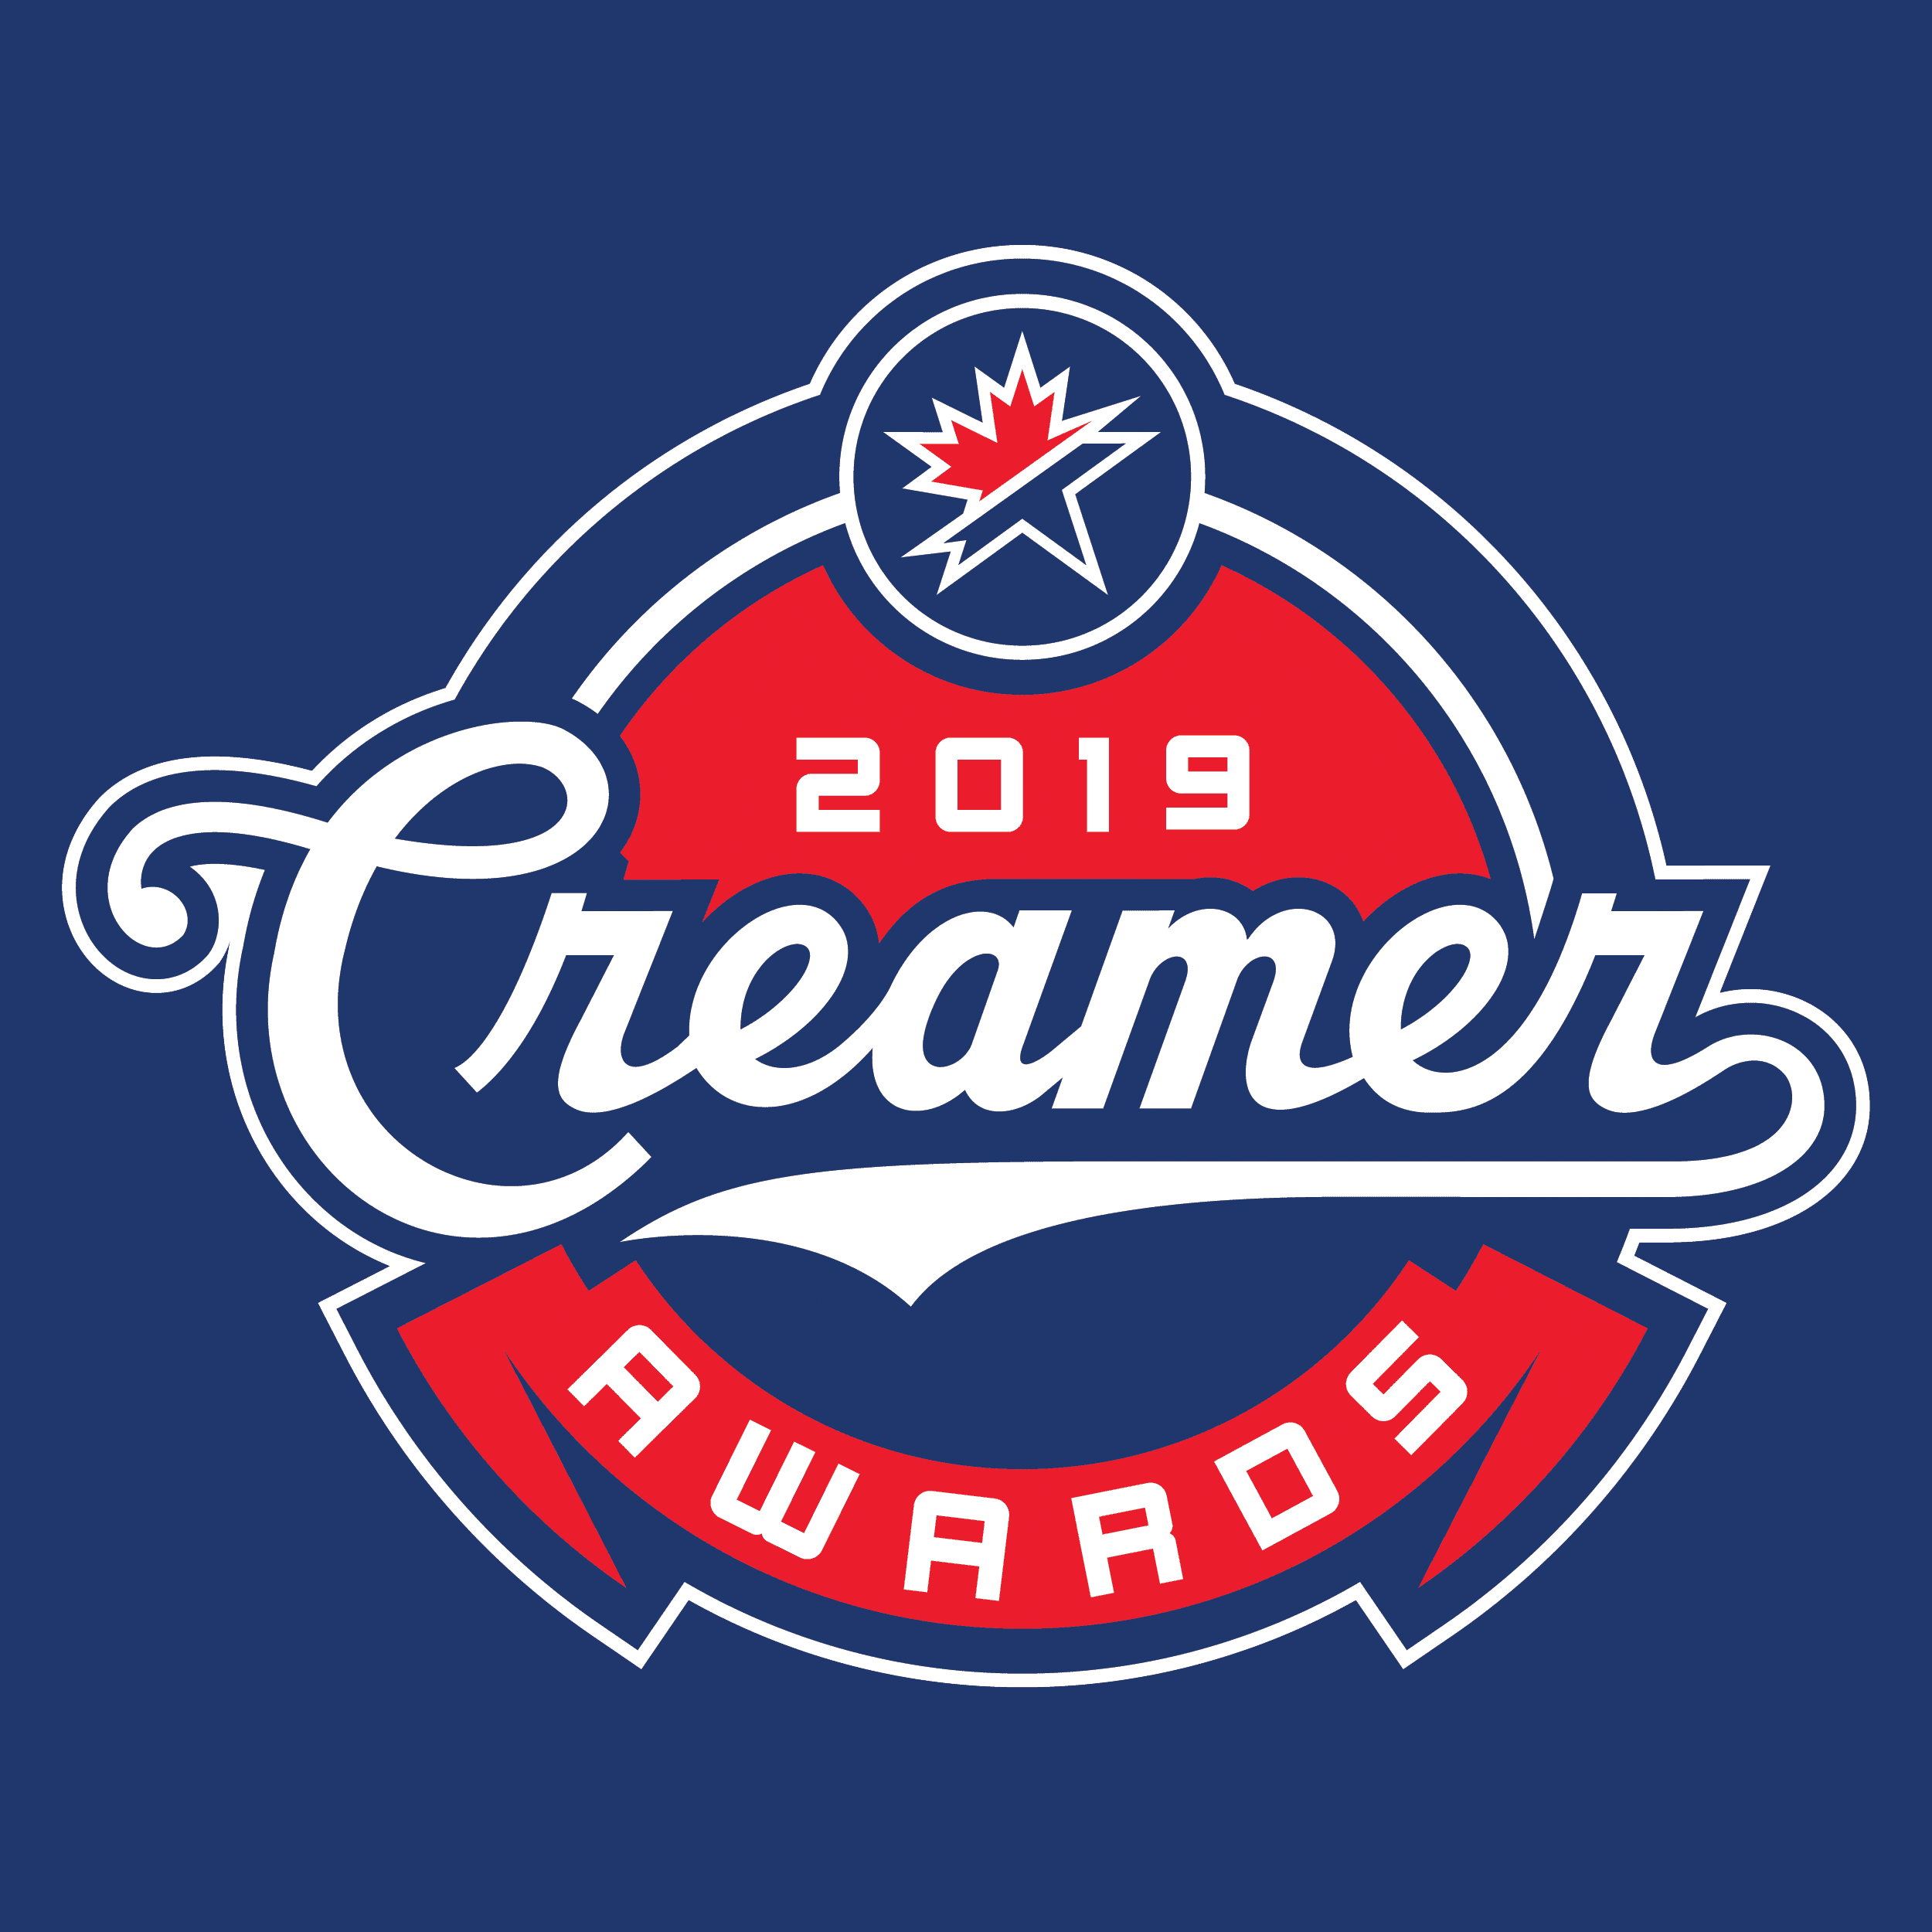 VOTE NOW: 2019 Creamer Awards, the Best Sports Logos of the Year